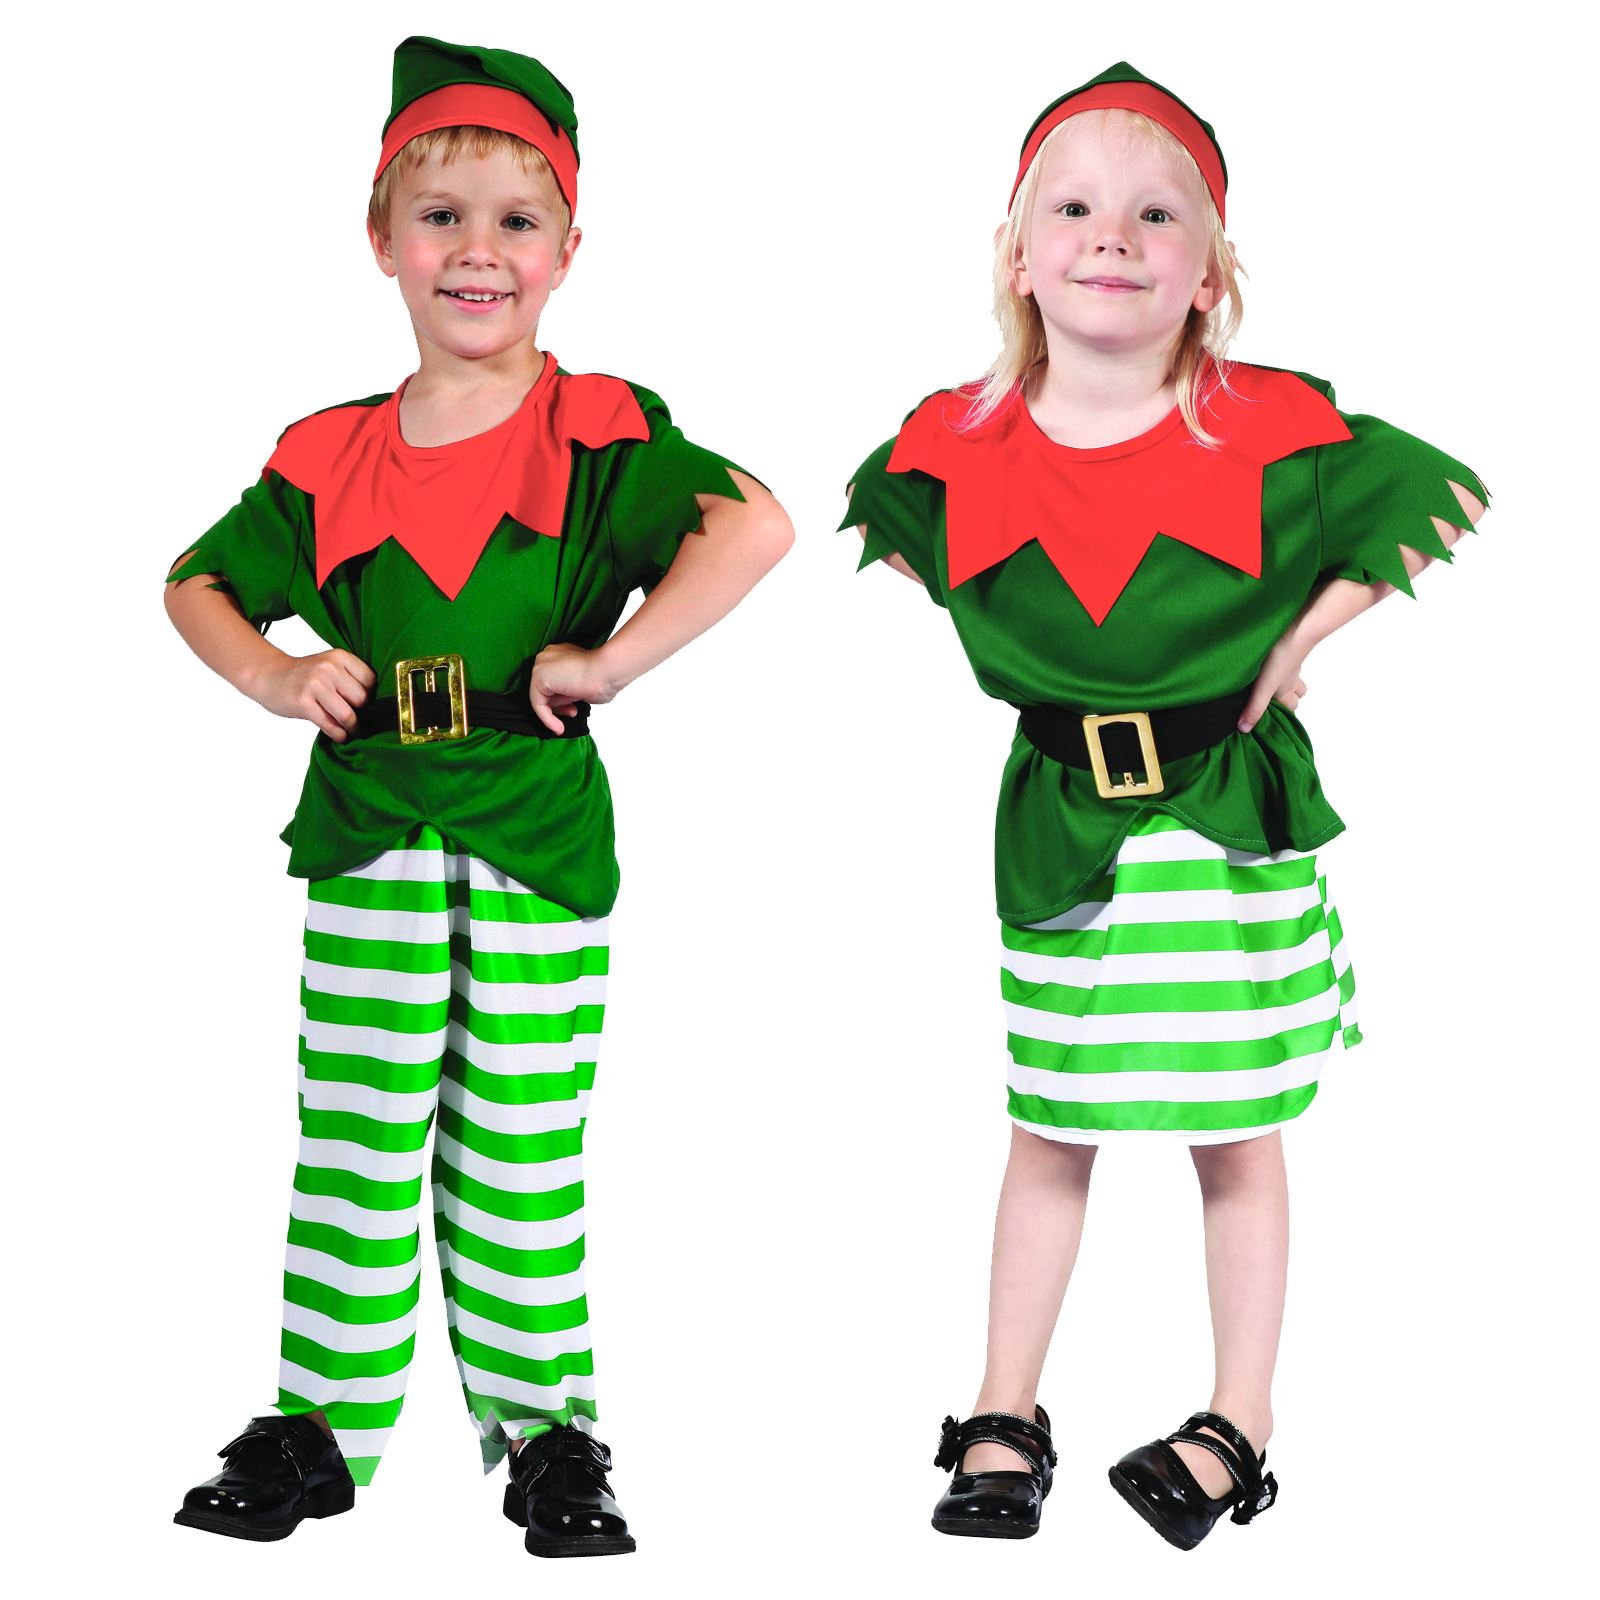 b599f3bed88f 2-3 Years Toddler's Boys Girls Santa Elf Christmas Party Fancy Dress ...